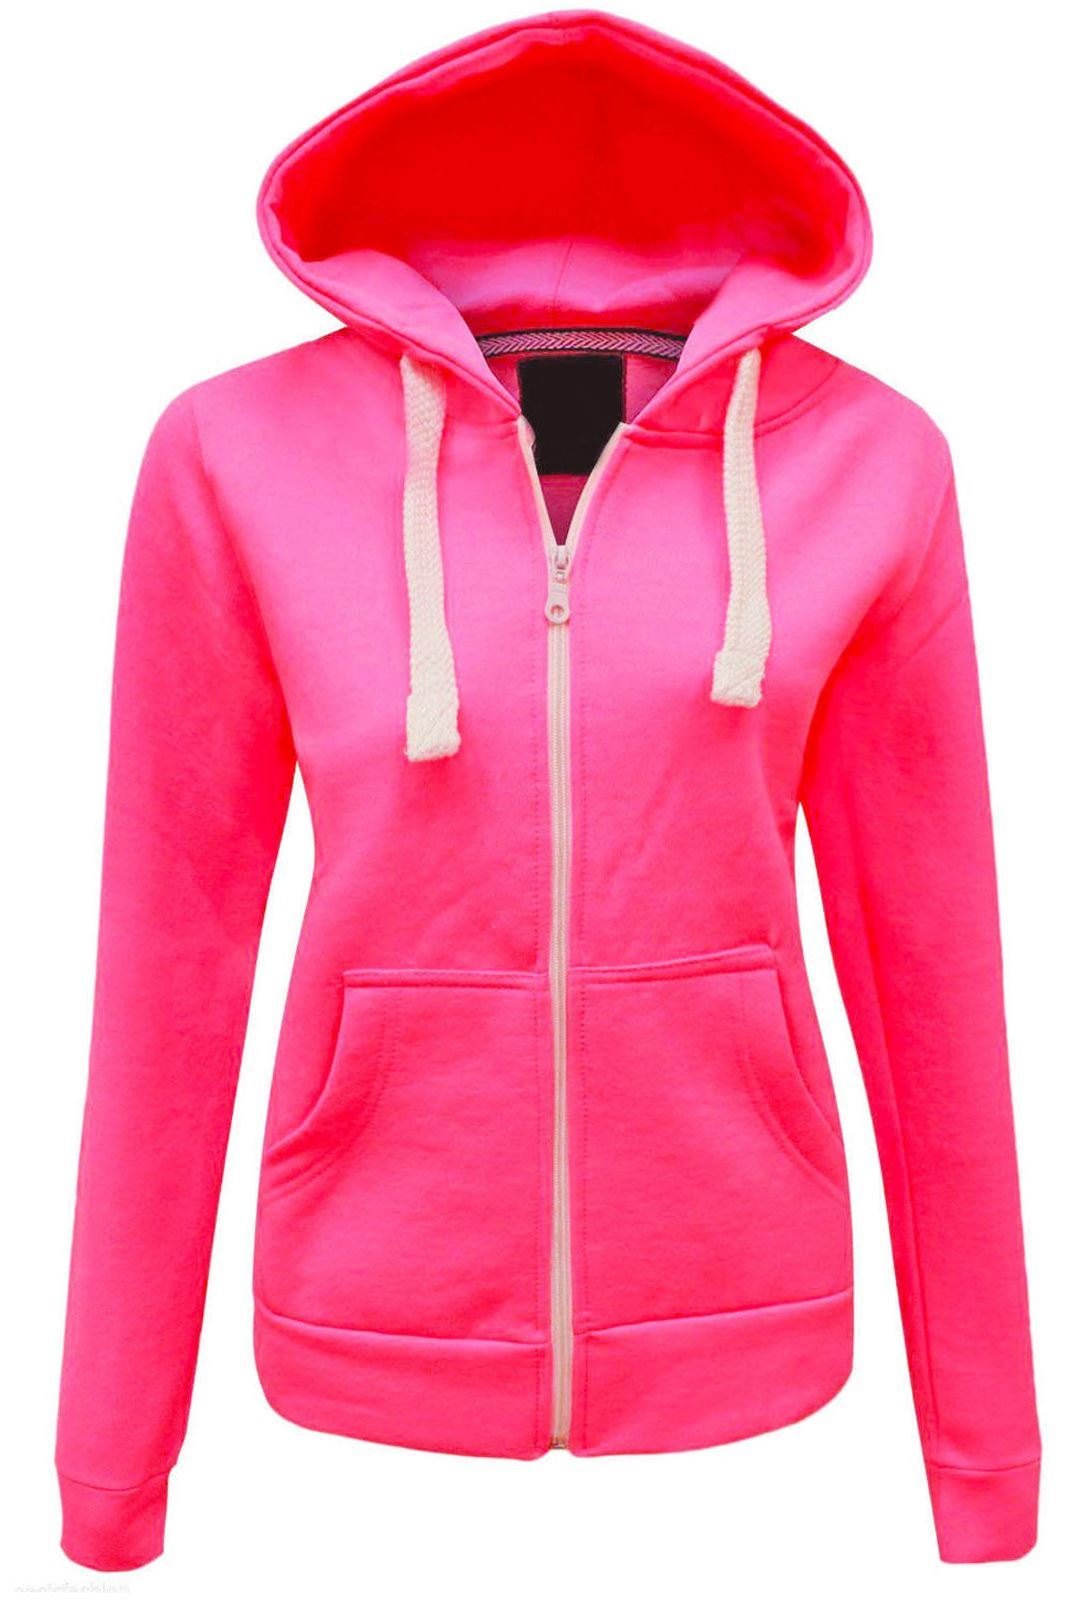 Shop women's pink hoodies & sweatshirts from DICK'S Sporting Goods today. If you find a lower price on women's pink hoodies & sweatshirts somewhere else, we'll match it with our Best Price Guarantee! Check out customer reviews on women's pink hoodies & sweatshirts and save big on a variety of products. Plus, ScoreCard members earn points on every purchase.